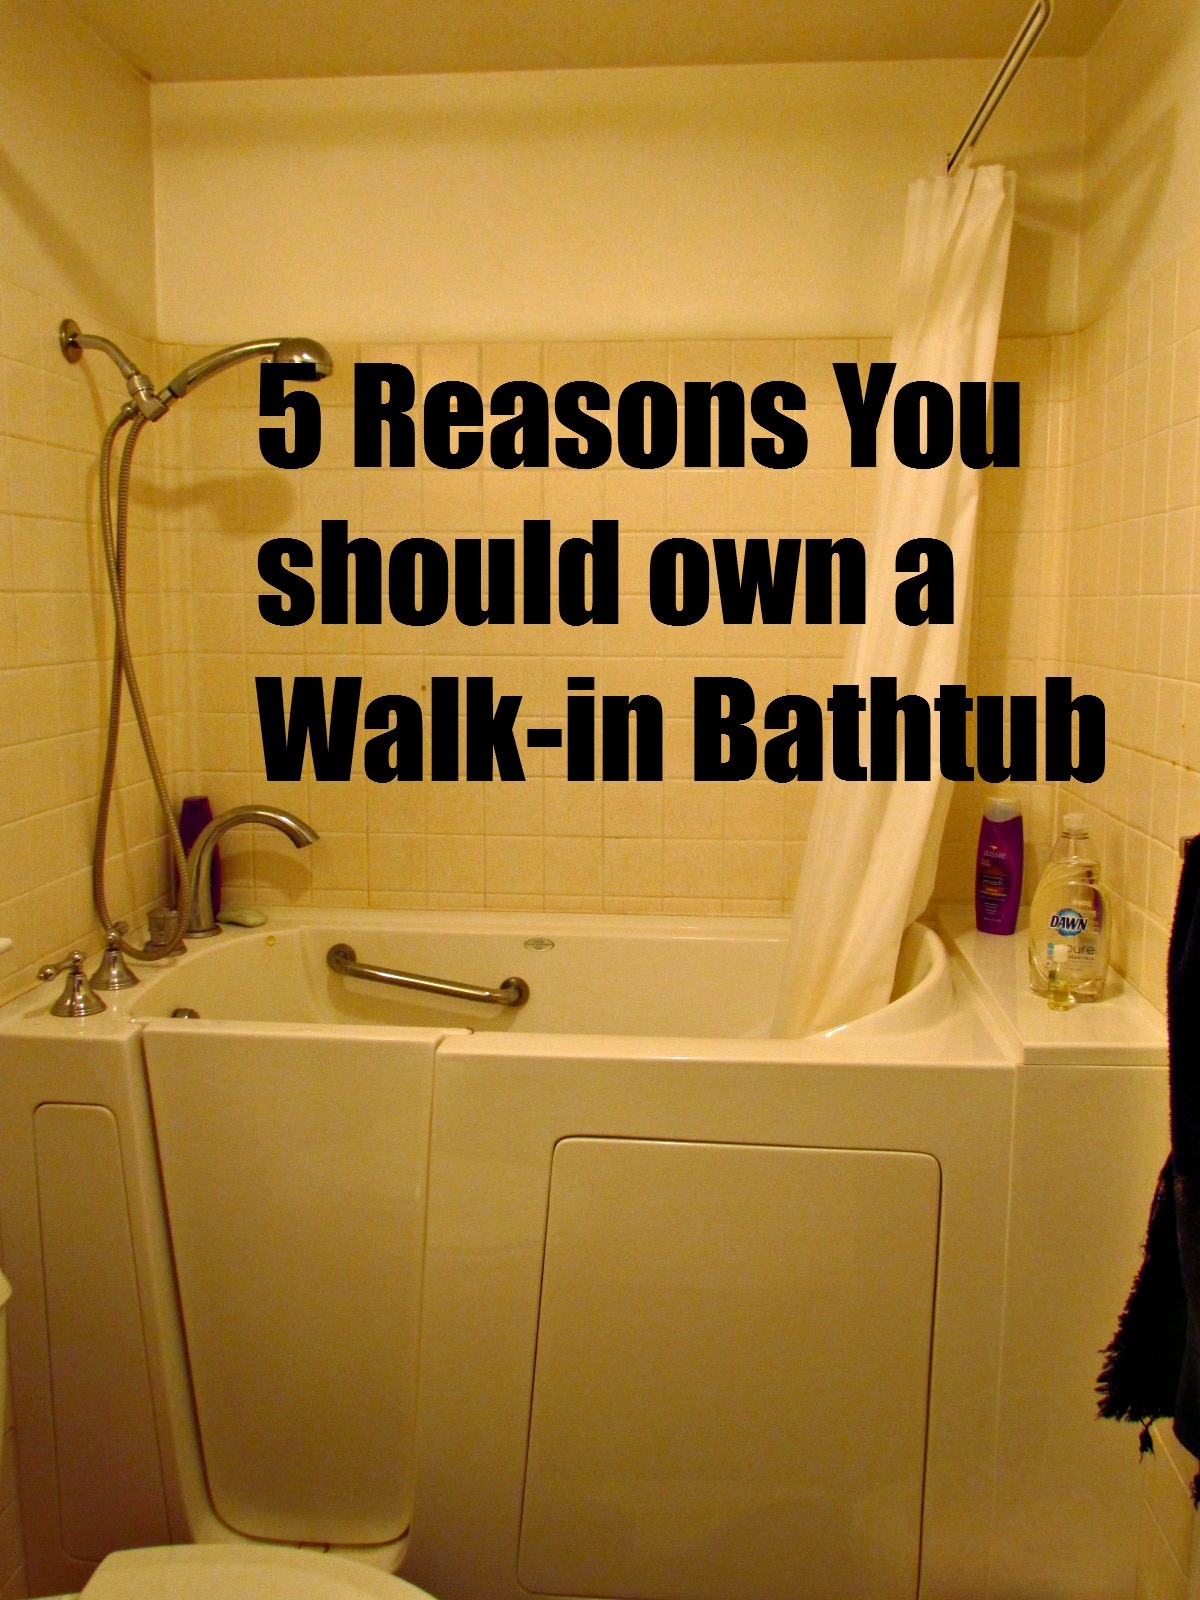 5 Awesome Reasons to own a Walk-In Bath